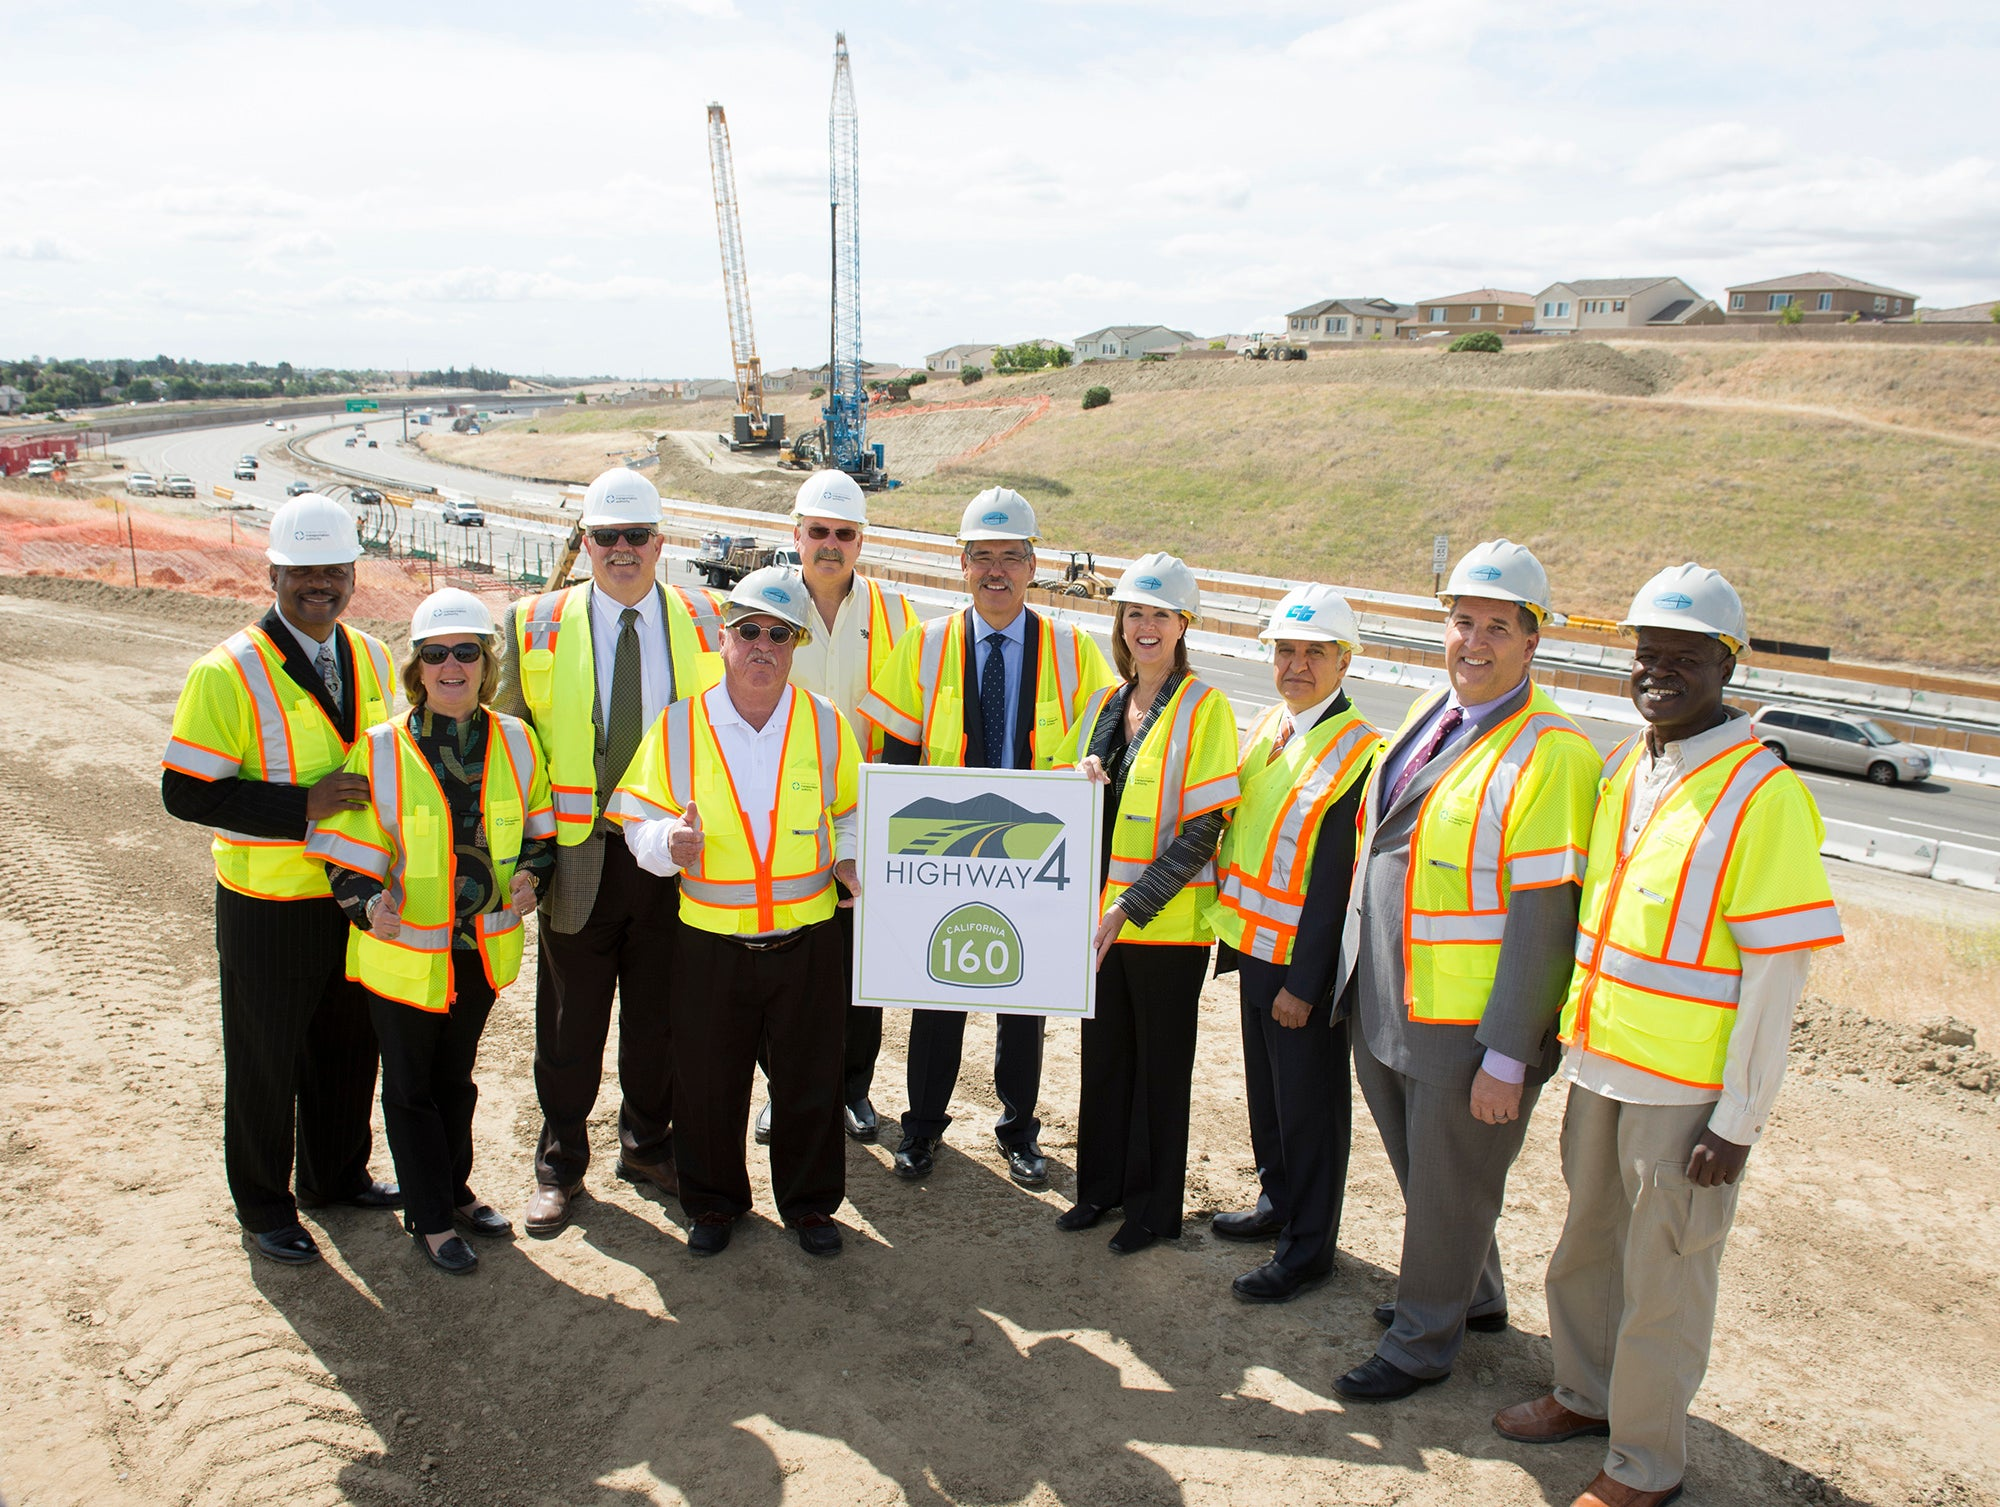 Officials take part in the groundbreaking ceremony for the SR 160/Hwy. 4 direct connector ramps project.